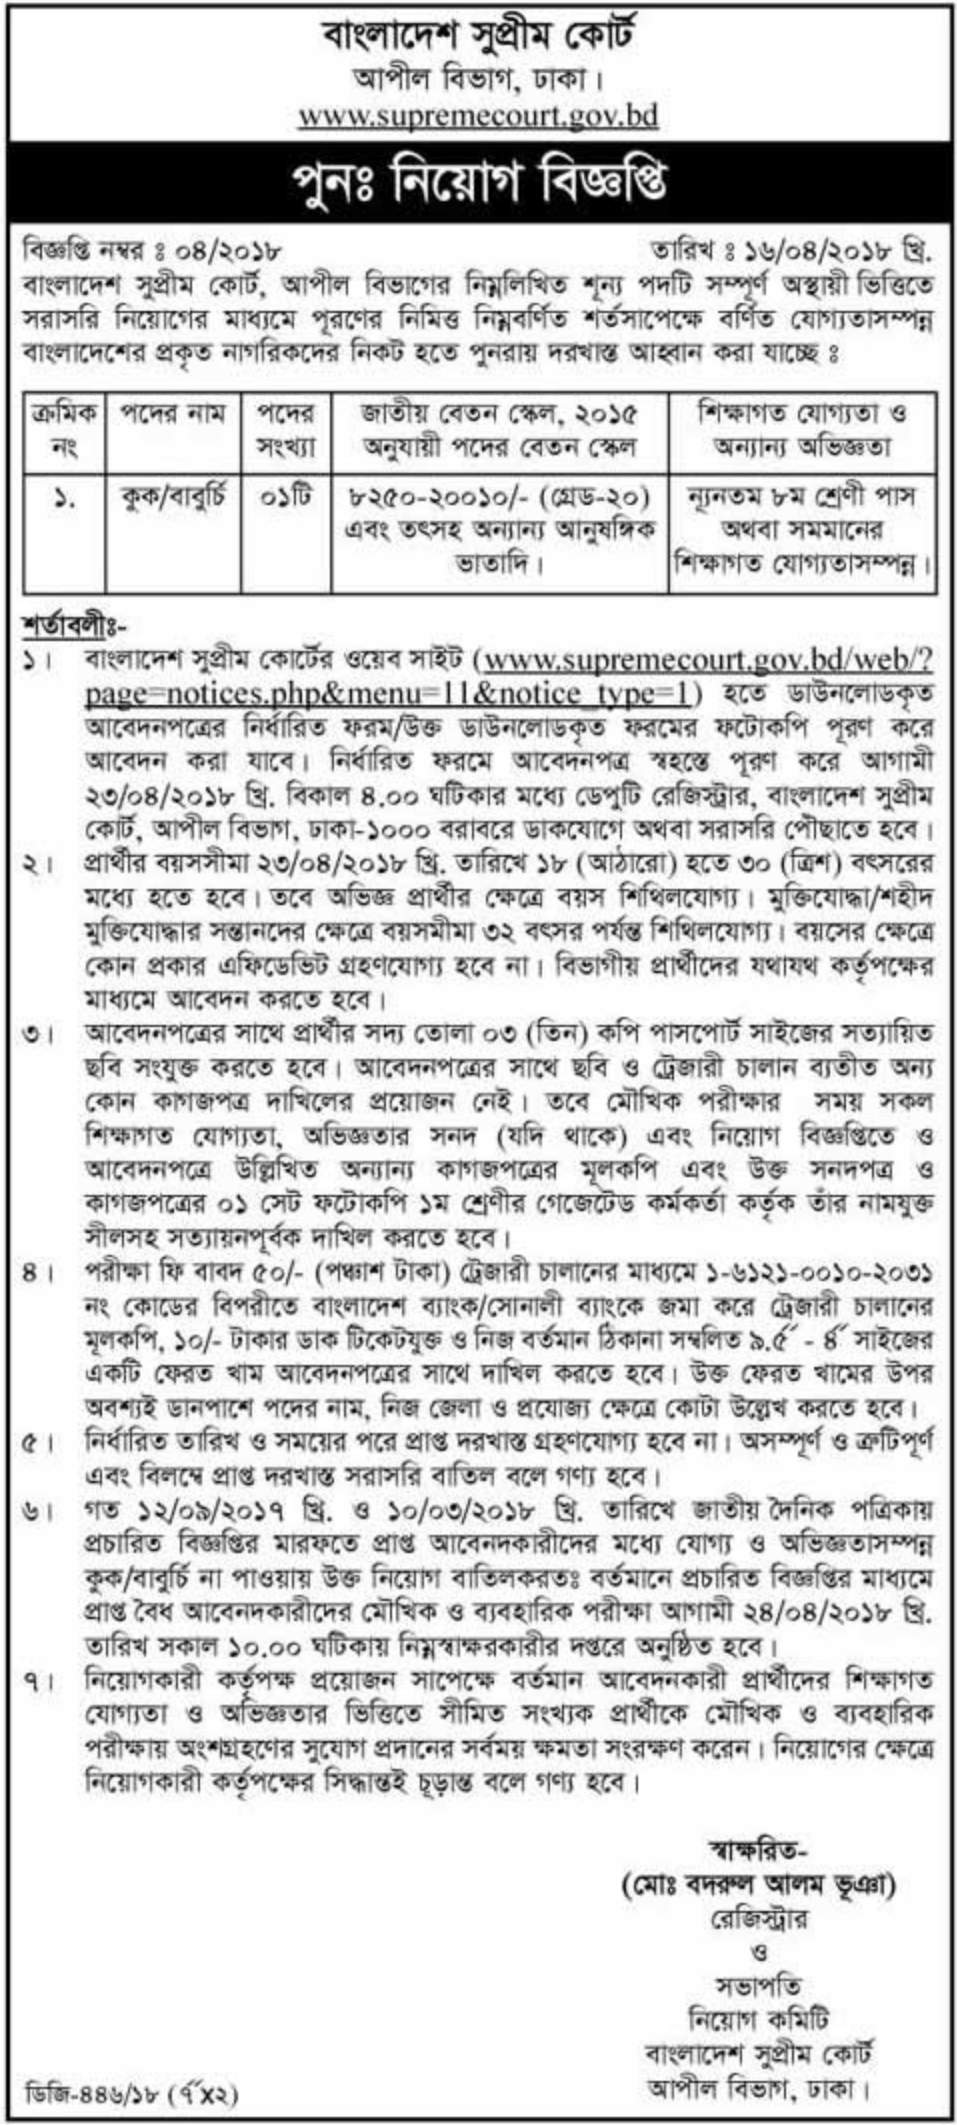 Supreme Court Job Circular 2018